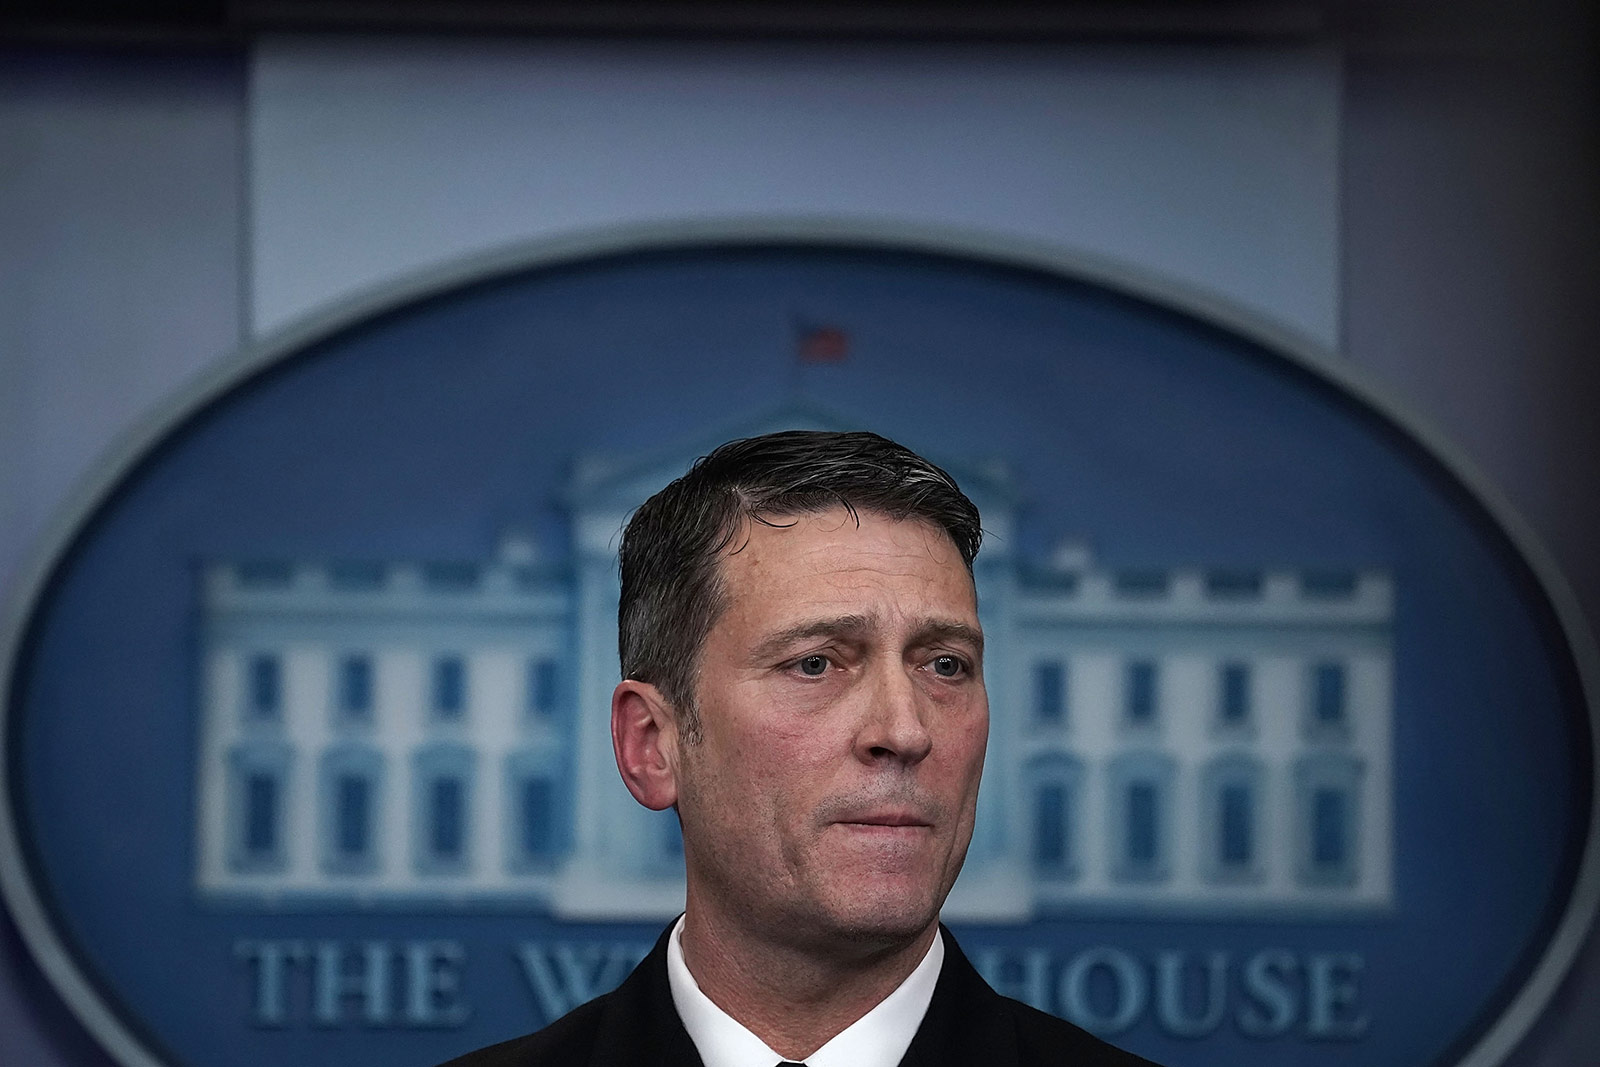 Ronny Jackson under Obama and Trump: From 'tremendous asset' to 'tyrant'